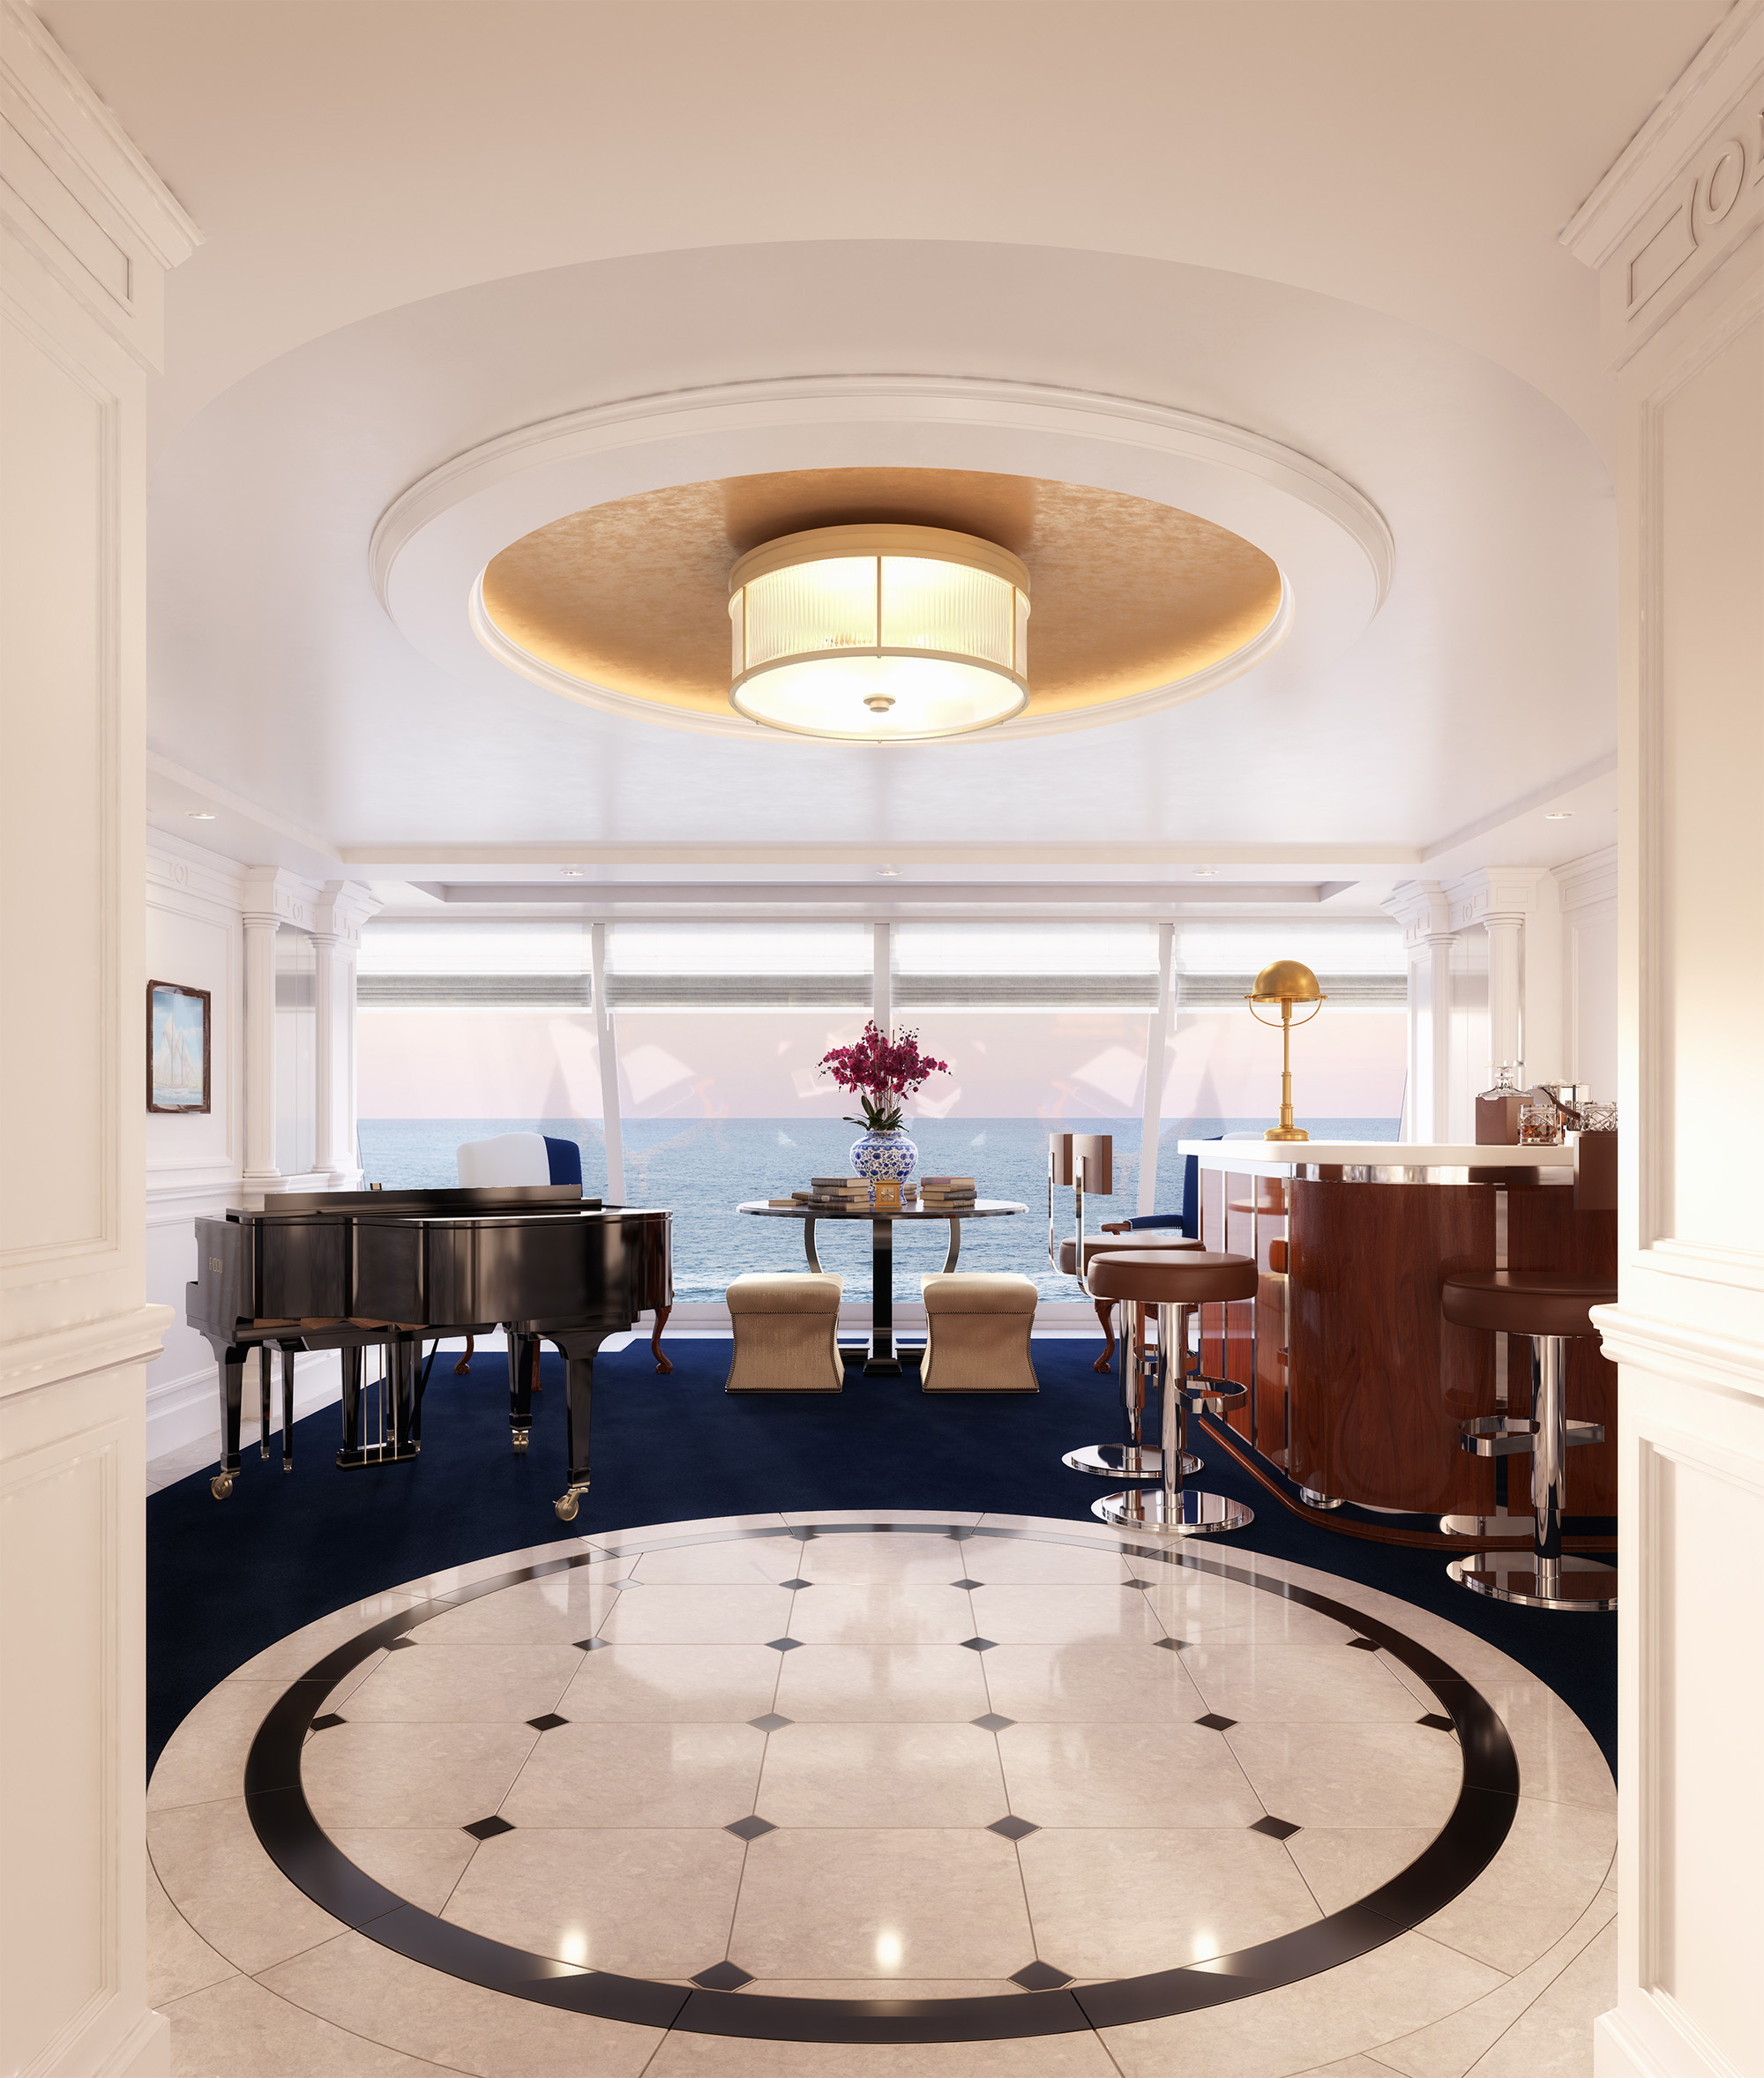 Grand Foyer Yacht : Oceania cruises reveals all new owner s suites furnished